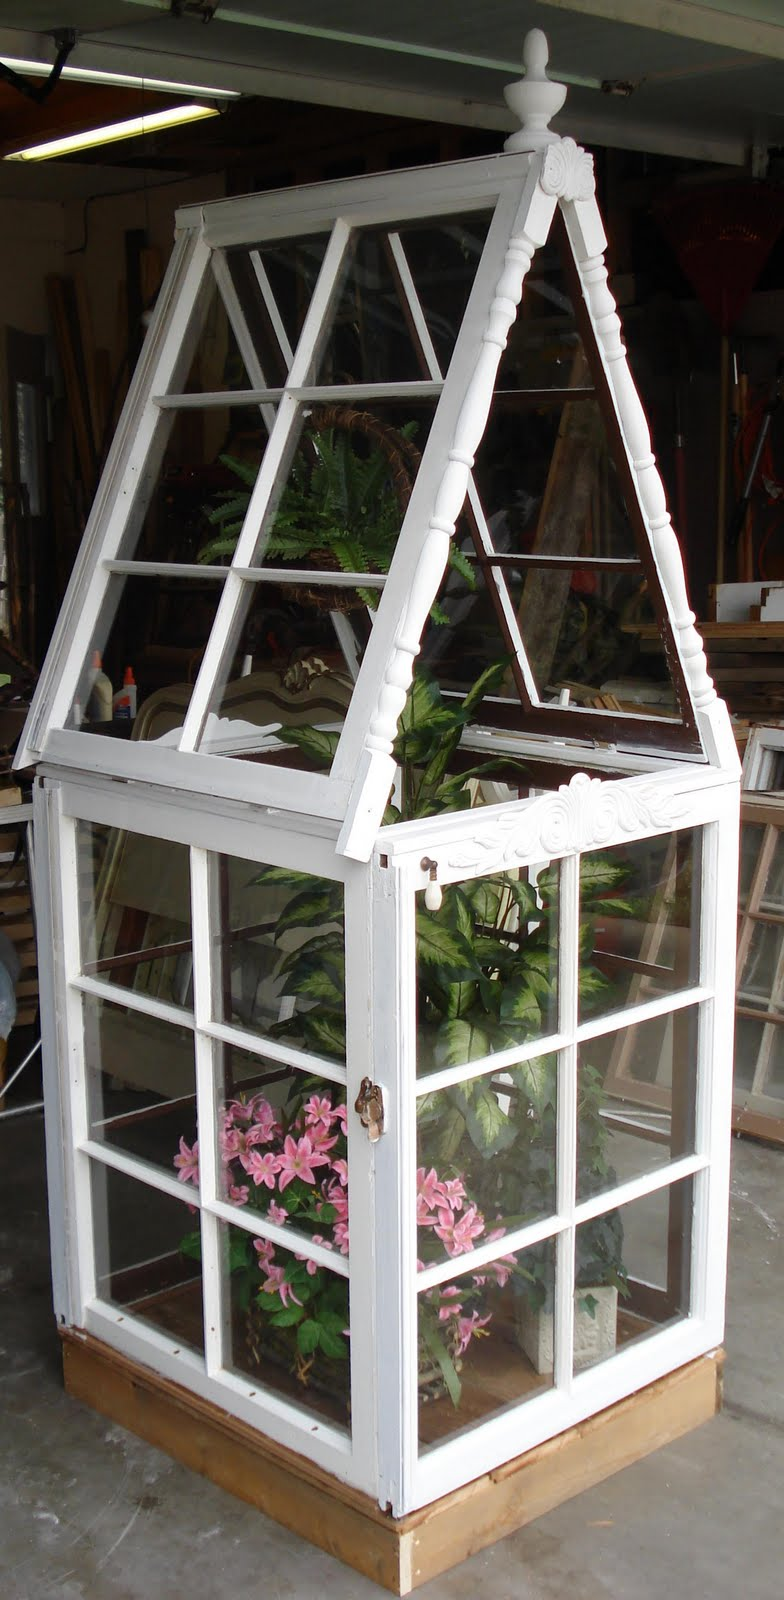 Jodys Re Creations Mini Greenhouse Glass House Art Piece